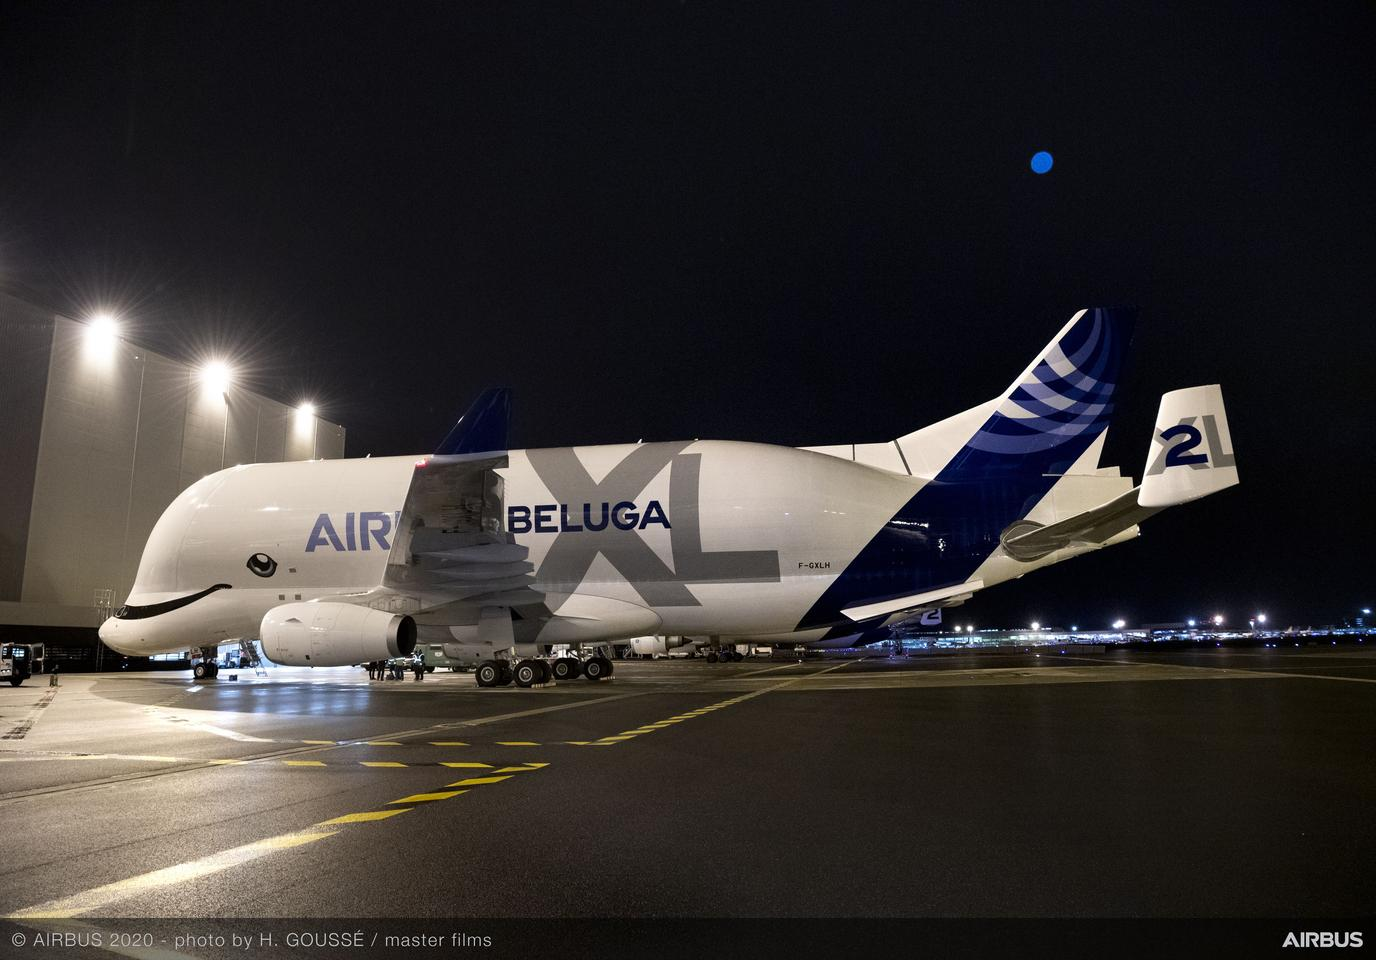 A giant cargo plane designed to carry large aircraft pieces between manufacturing facilities for Airbus has entered service